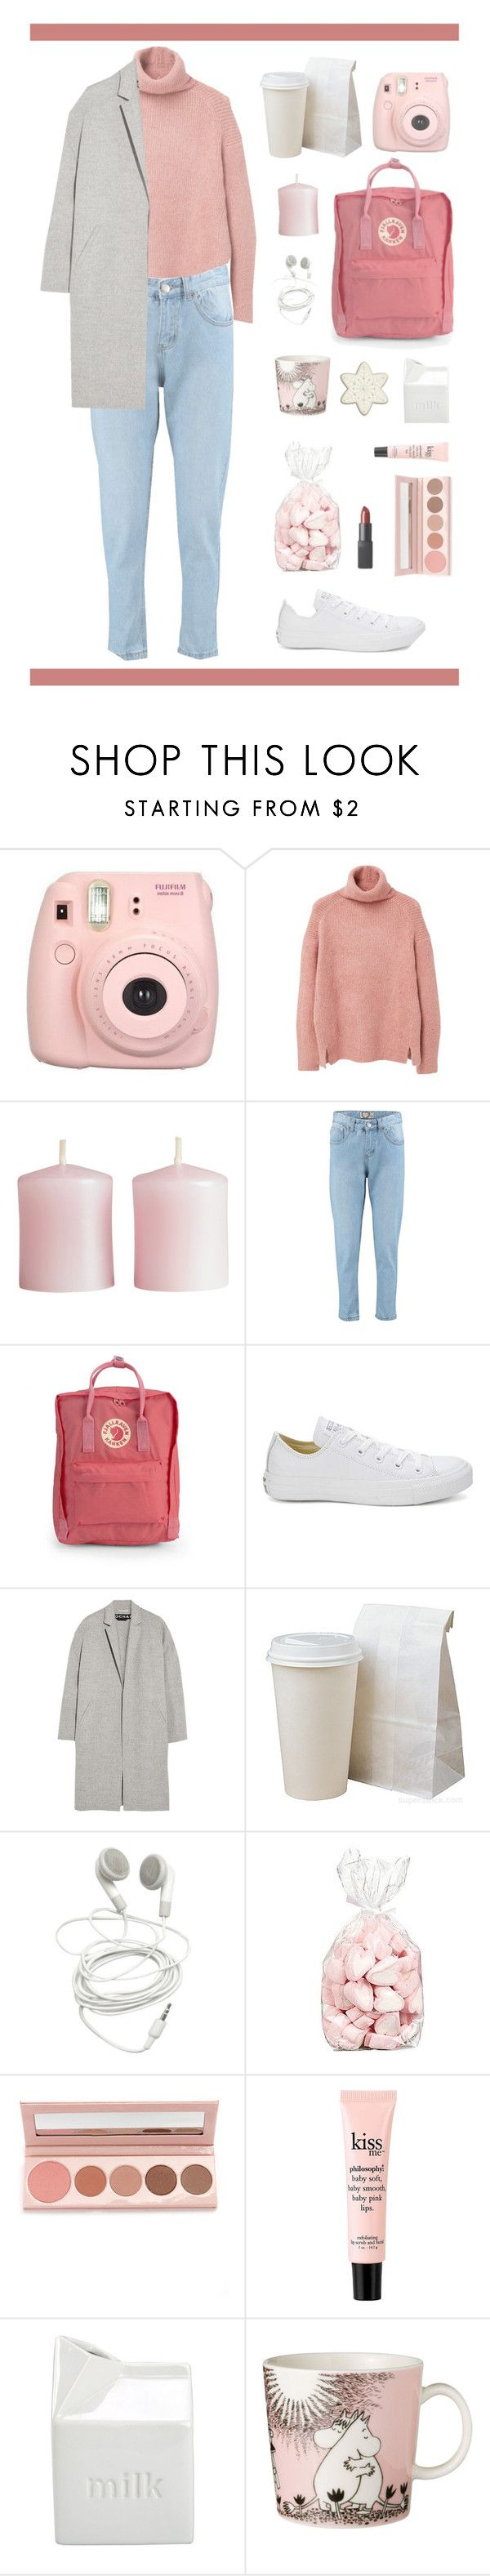 """""""Noora Saetre // SKAM"""" by unknown-female ❤ liked on Polyvore featuring Fujifilm, MANGO, H&M, Boohoo, Fjällräven, Converse, Rochas, 100% Pure, philosophy and BIA Cordon Bleu"""